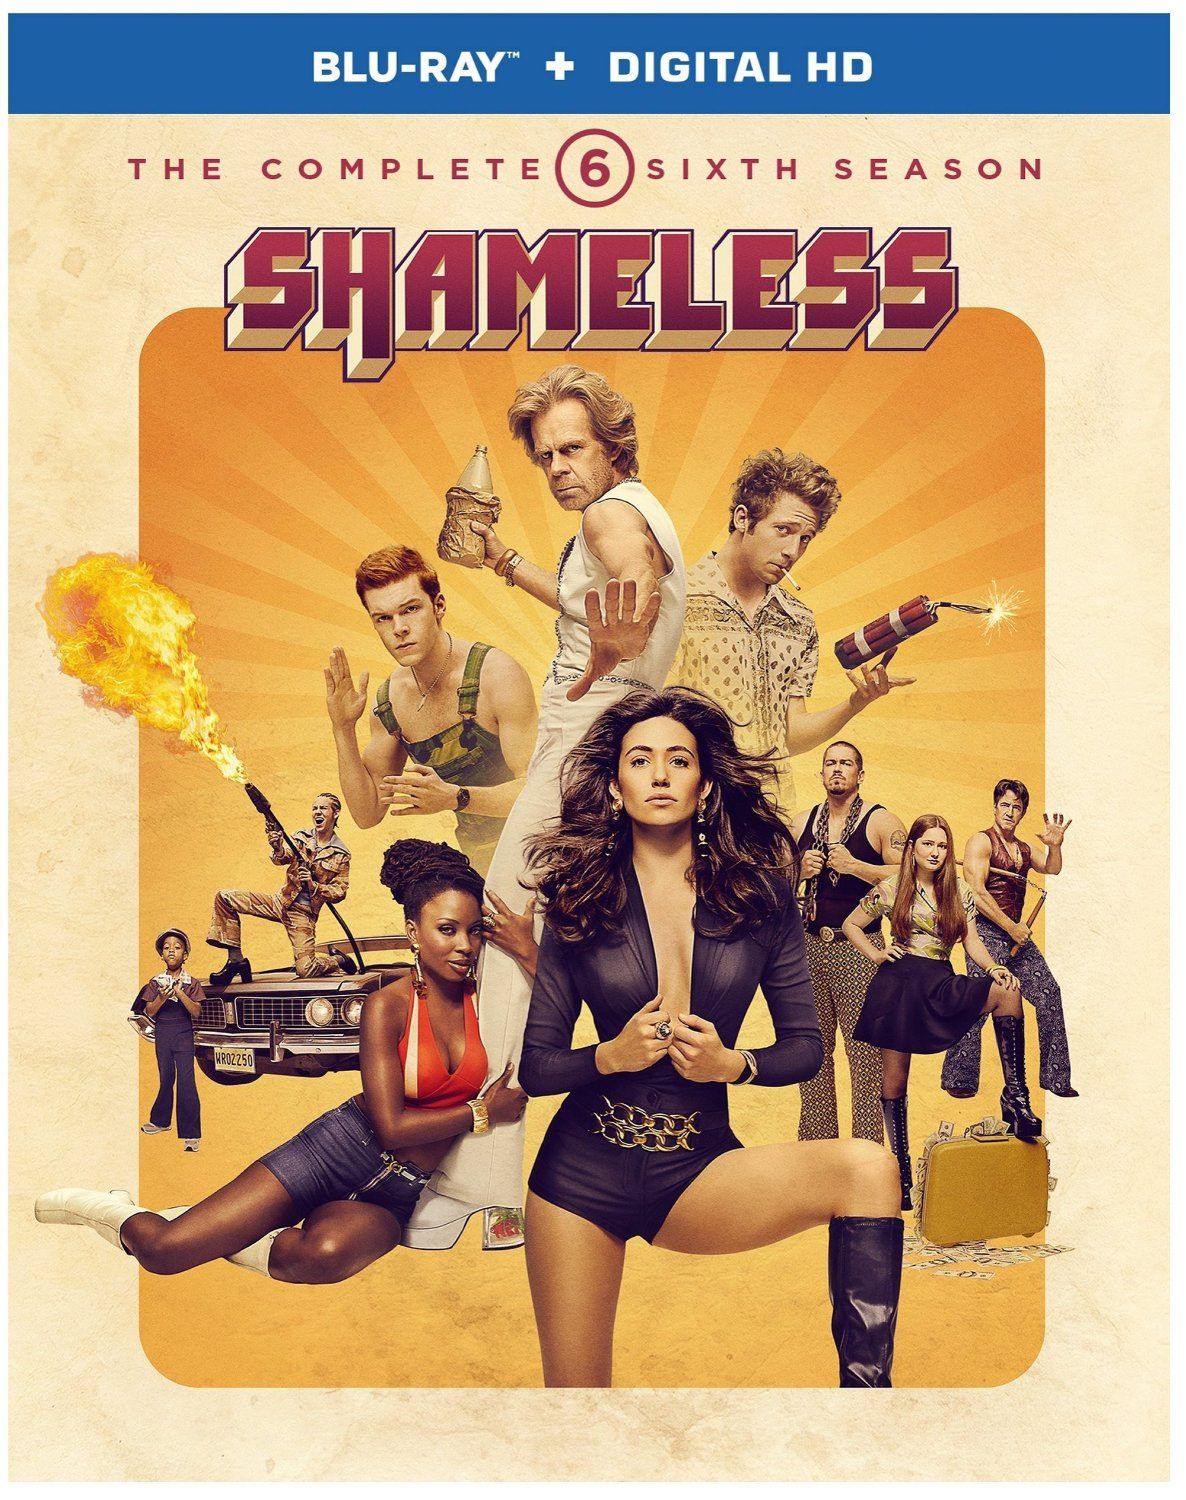 Shameless [US TV Series] - Shameless: The Complete Sixth Season